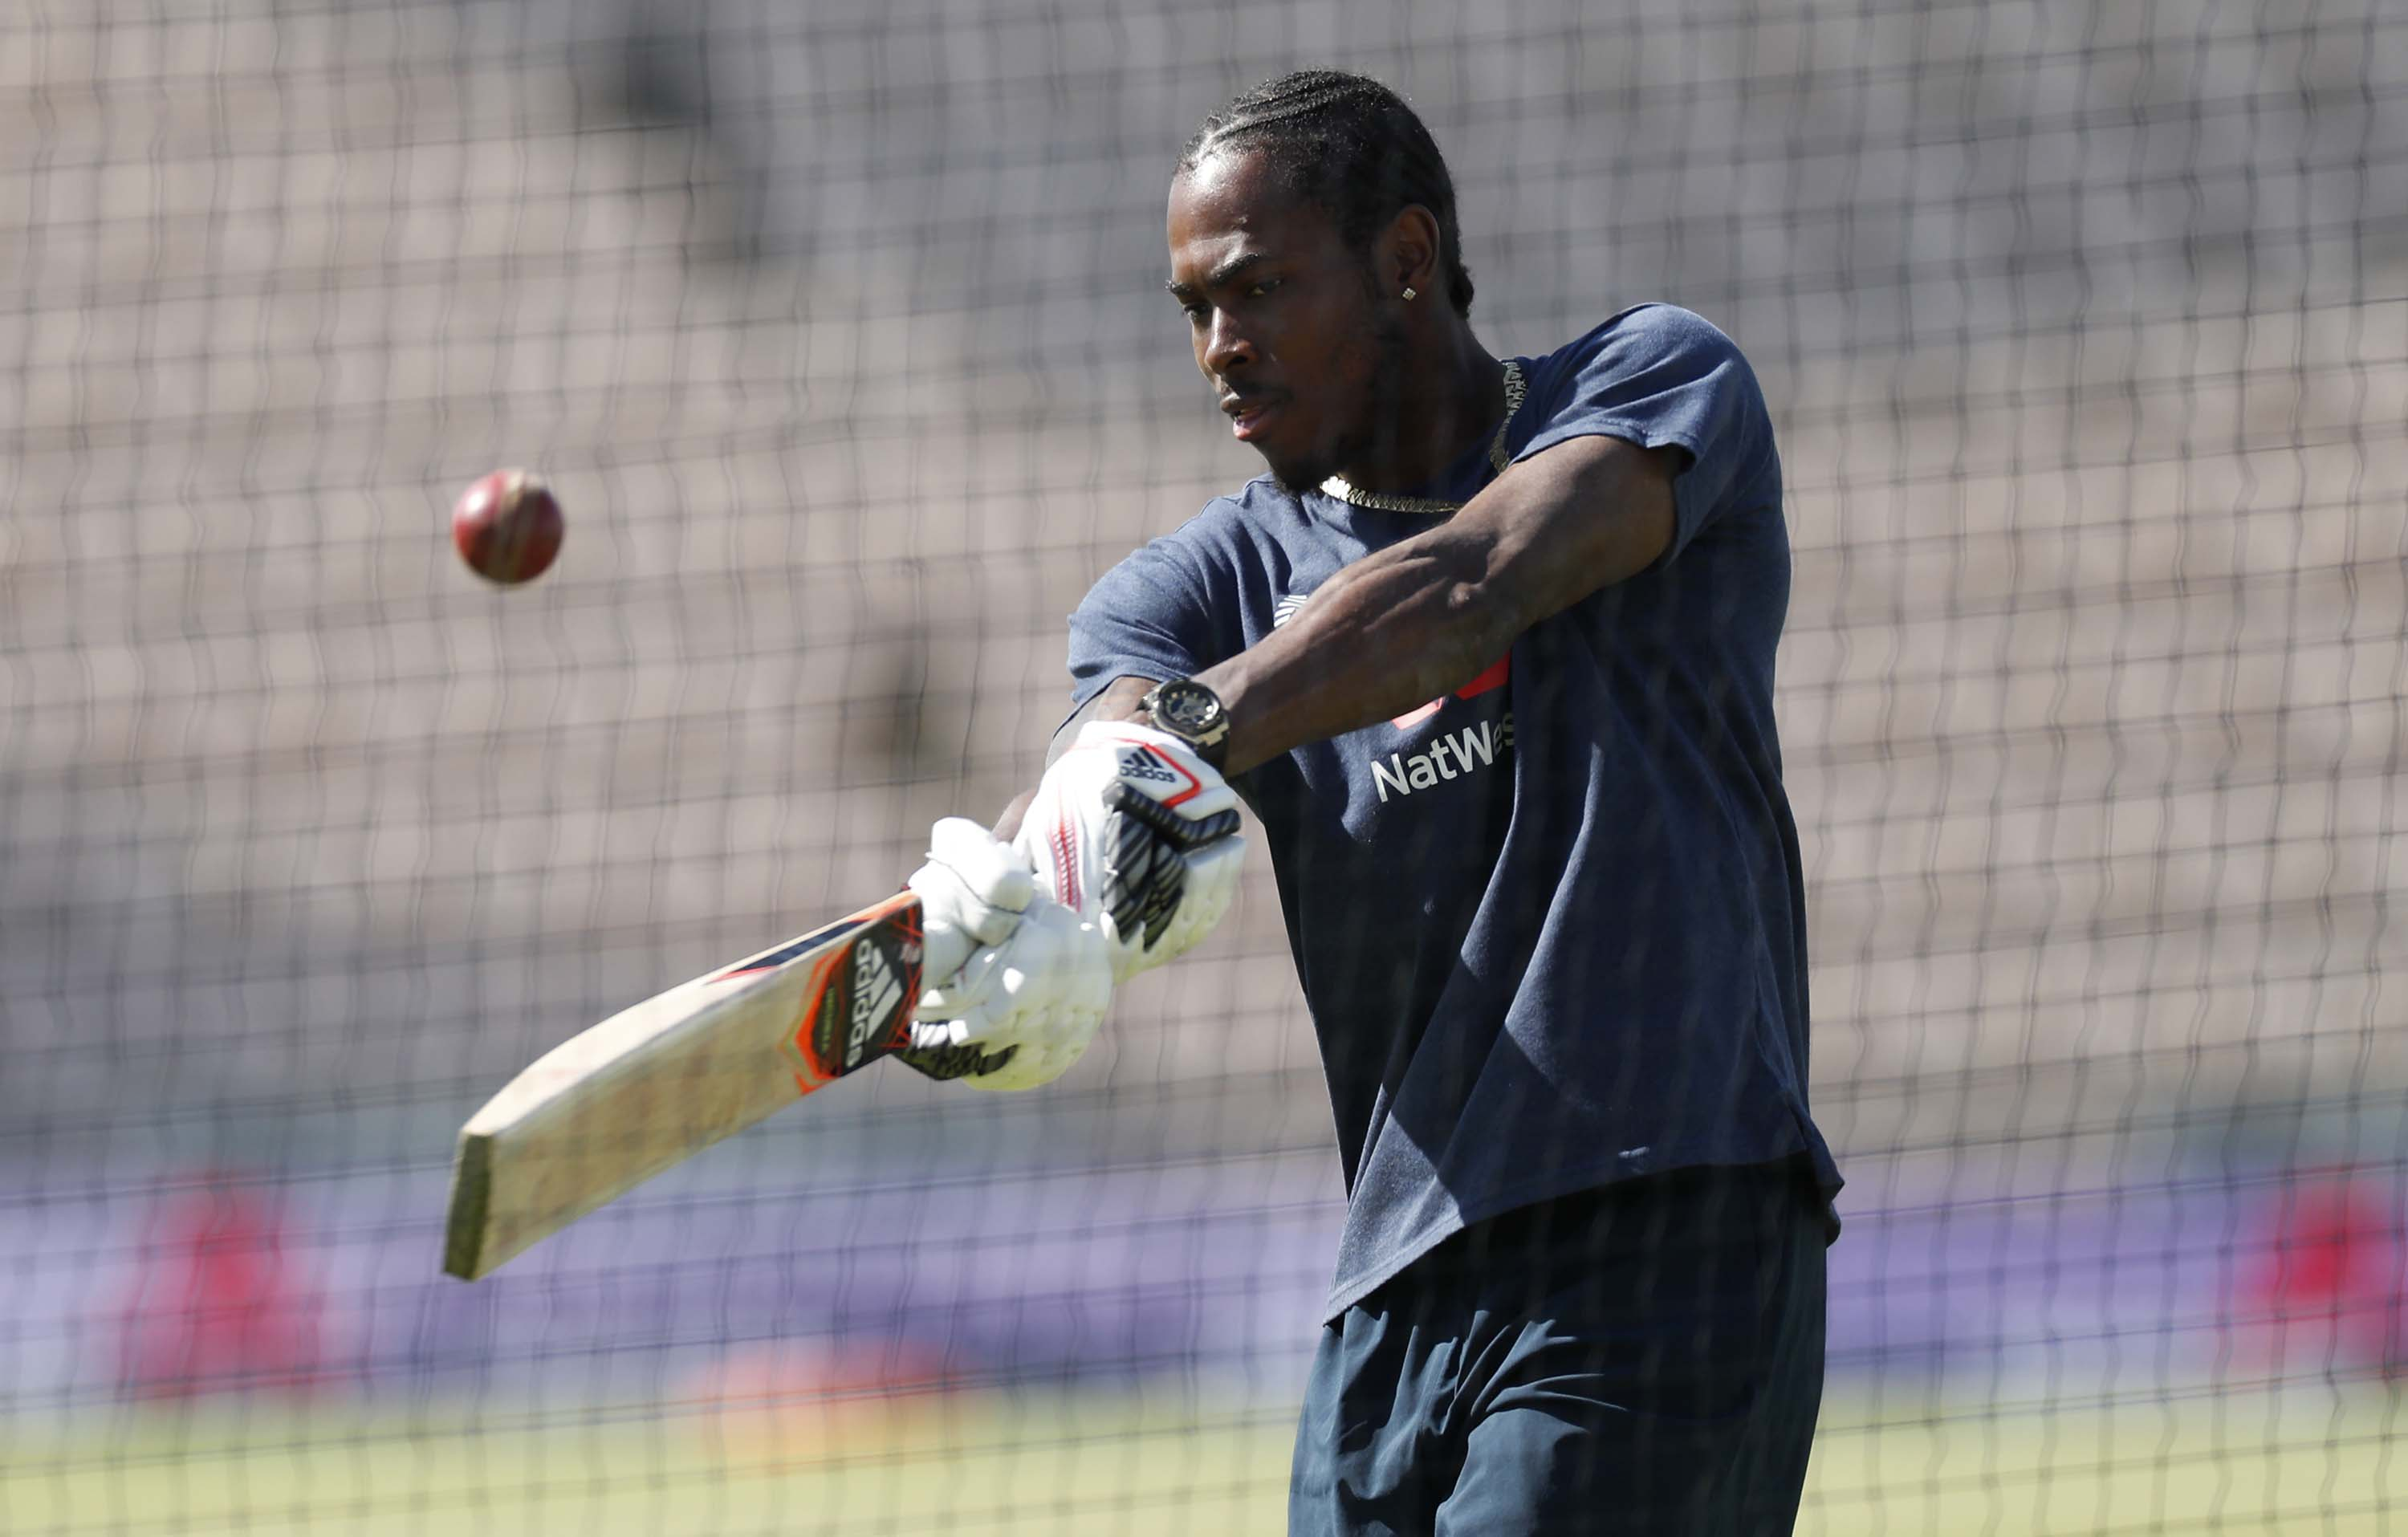 Cricketer Jofra Archer trains in Southampton, England, on July 12.